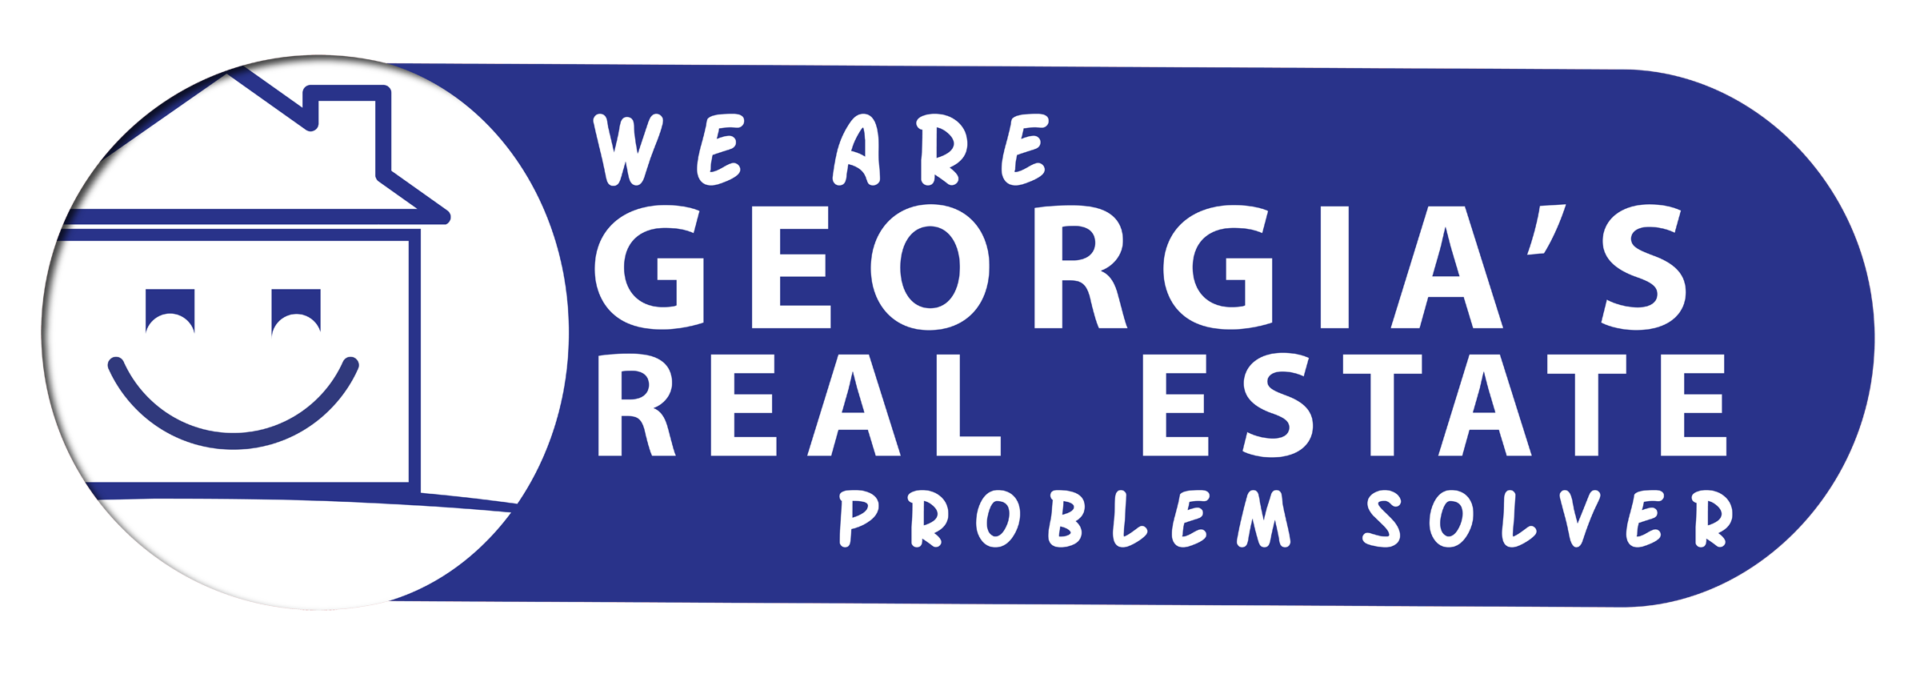 Real Estate Problem Solver logo